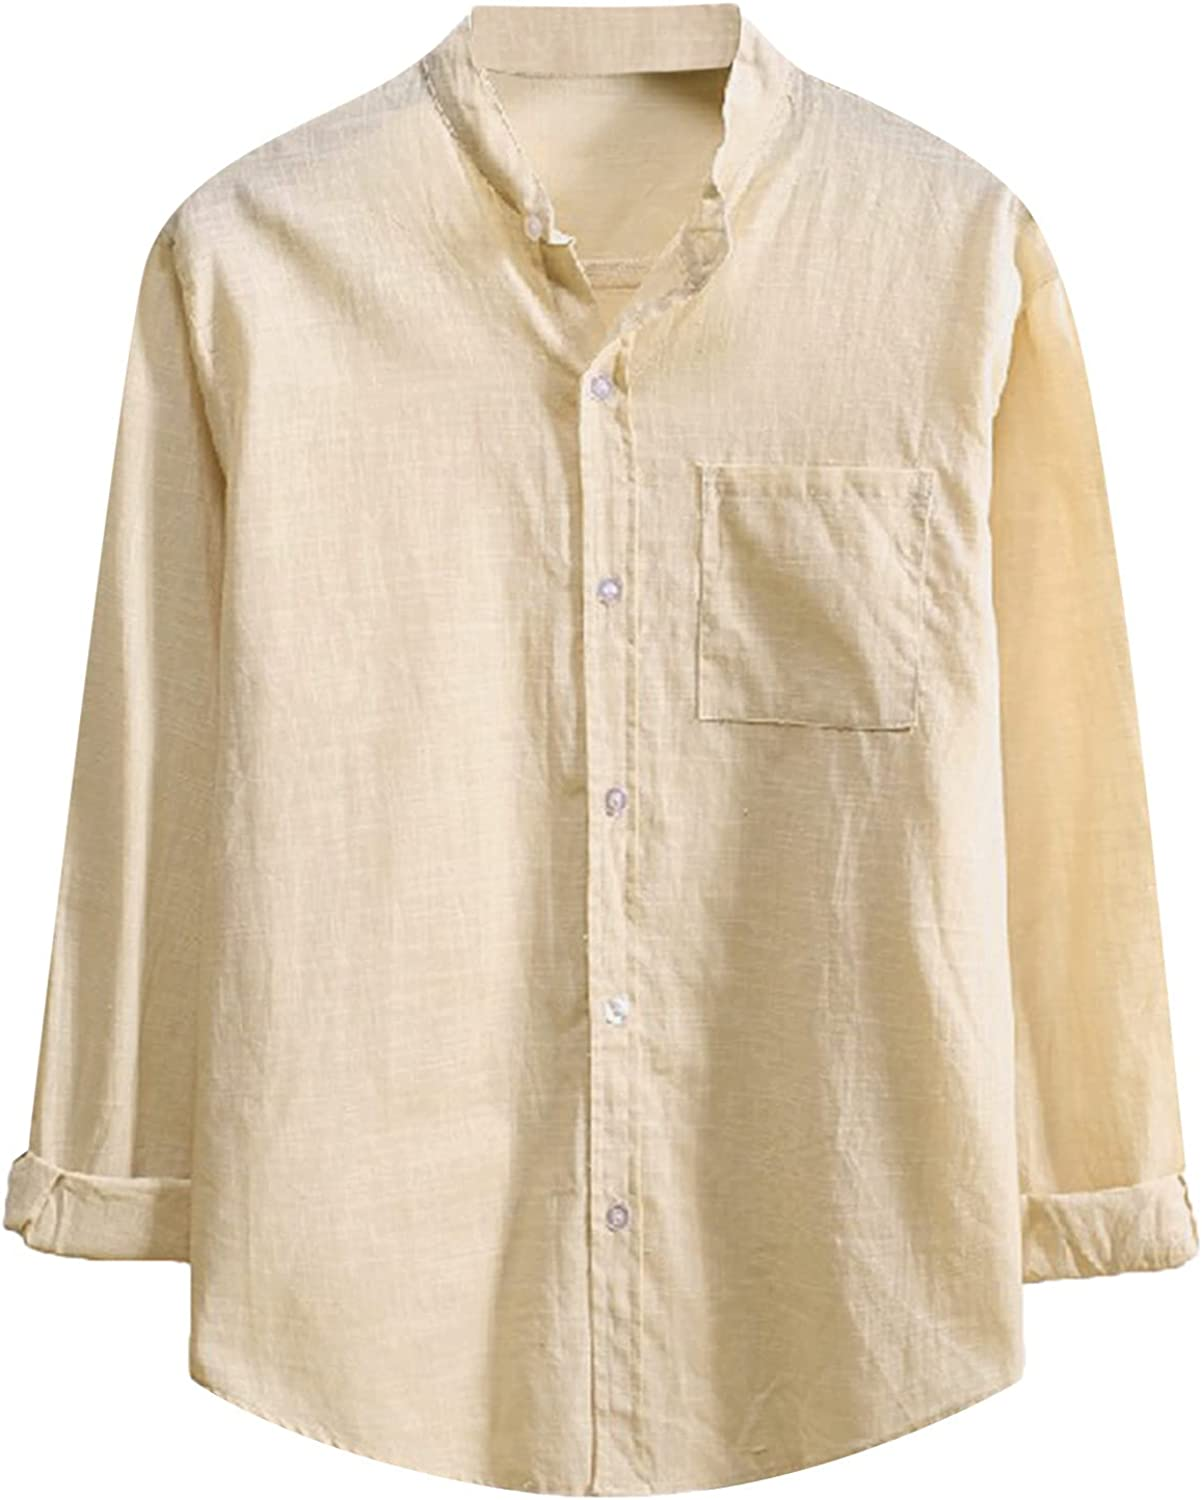 WOCACHI Casual Button Down Shirts For Mens, Cotton And Linen Long Sleeve Patchwork Shirt Fall Holidays Tops